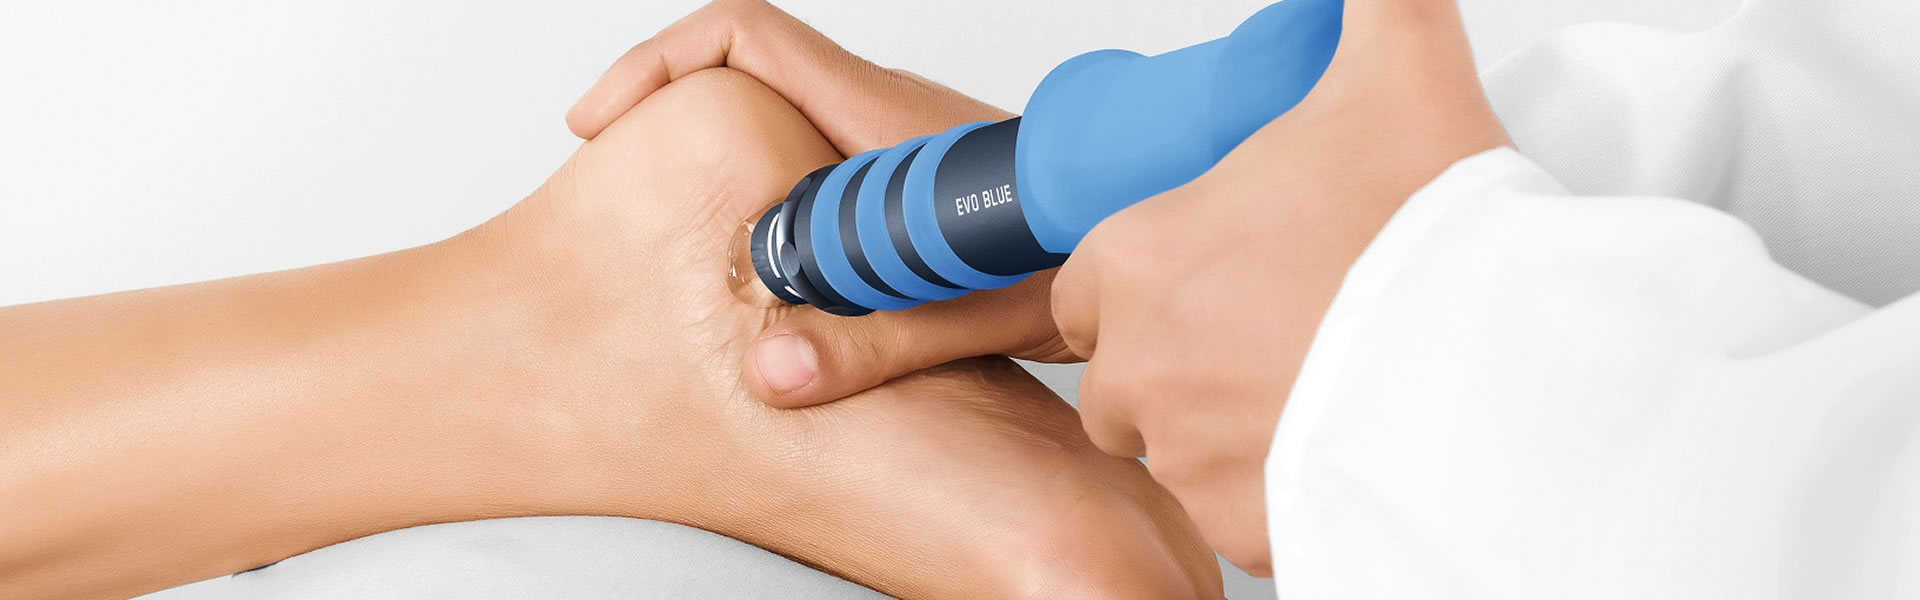 Extra Corporeal Radial Shockwave Therapy at Sportsmed Biologic - 1300 858 860